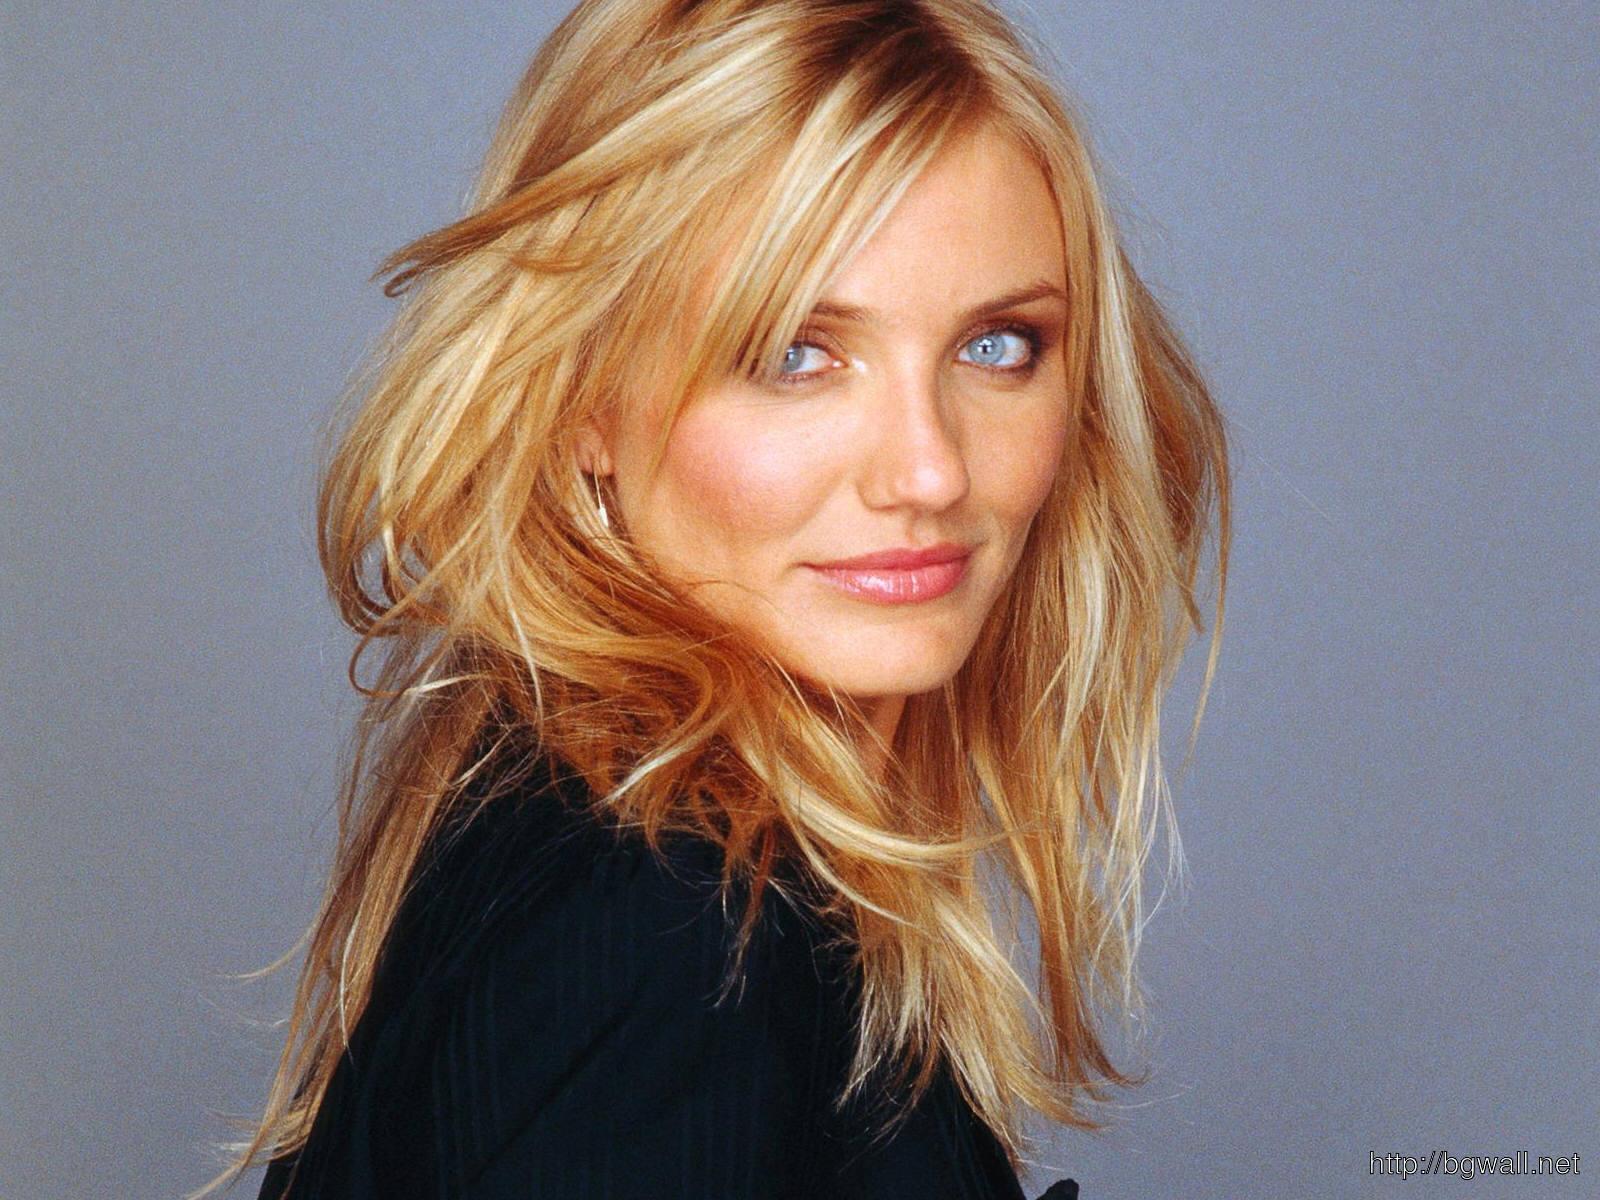 Cameron-Diaz-Background-HD-Wallpaper